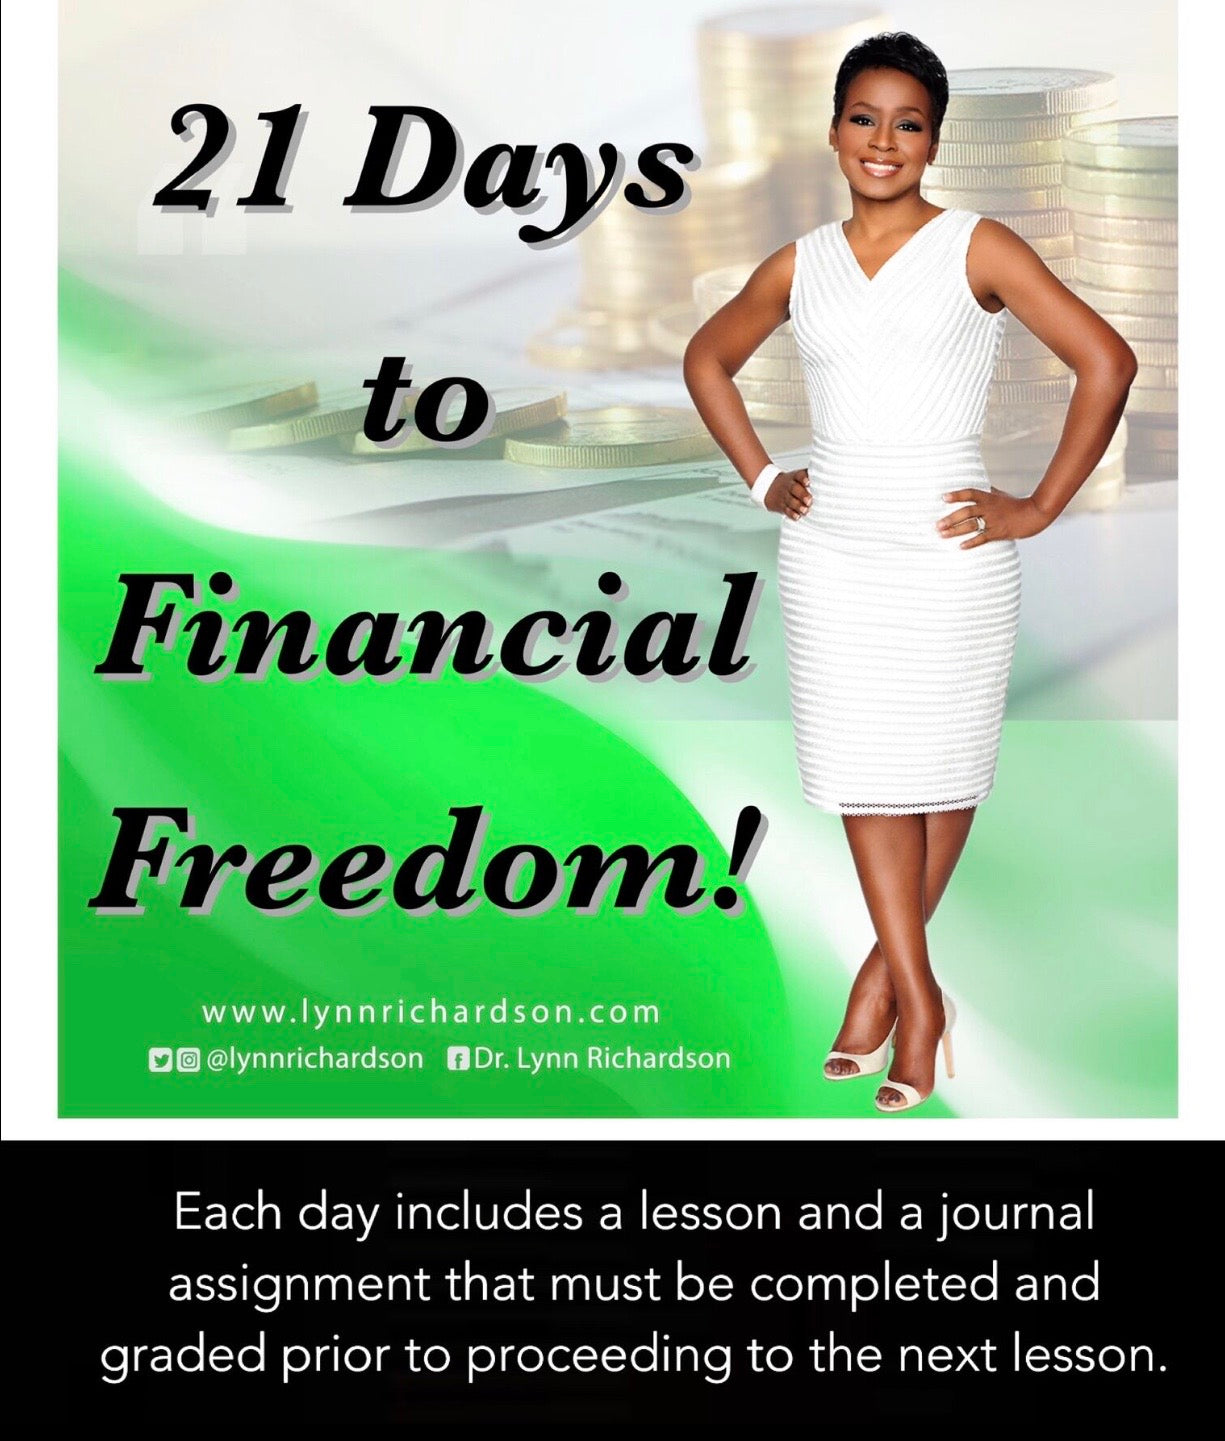 21 Days to Financial Freedom - Free Coaching!